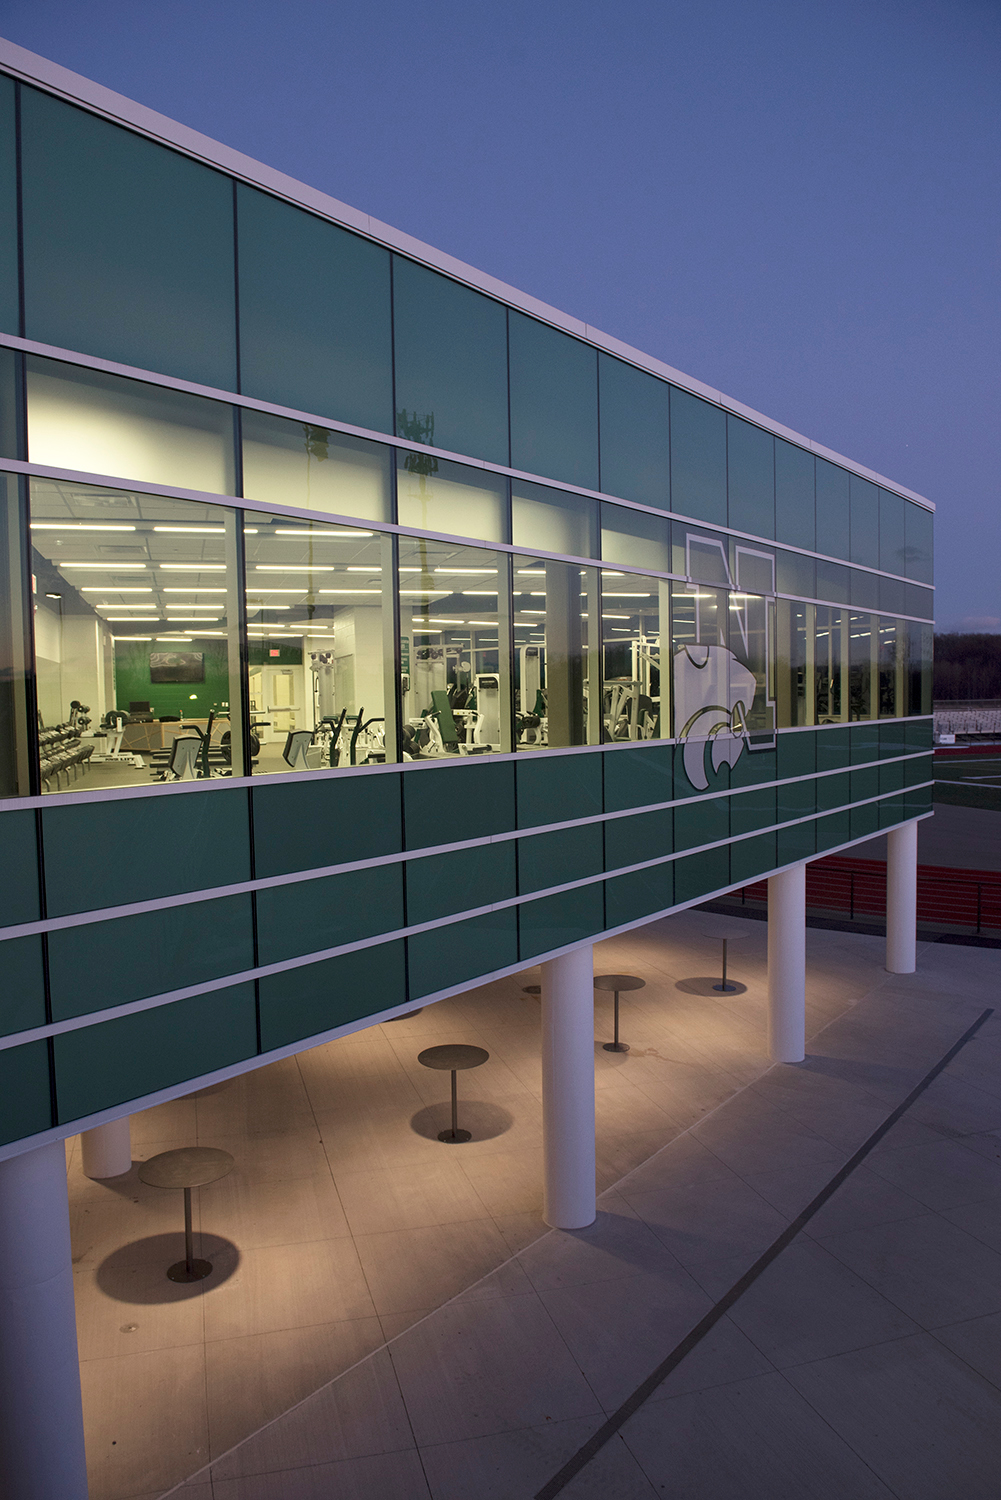 Project stakeholders for the Novi High School curtainwall project trusted the dependability of Tubelite's 400 Curtainwall in Bone White Paint finish.